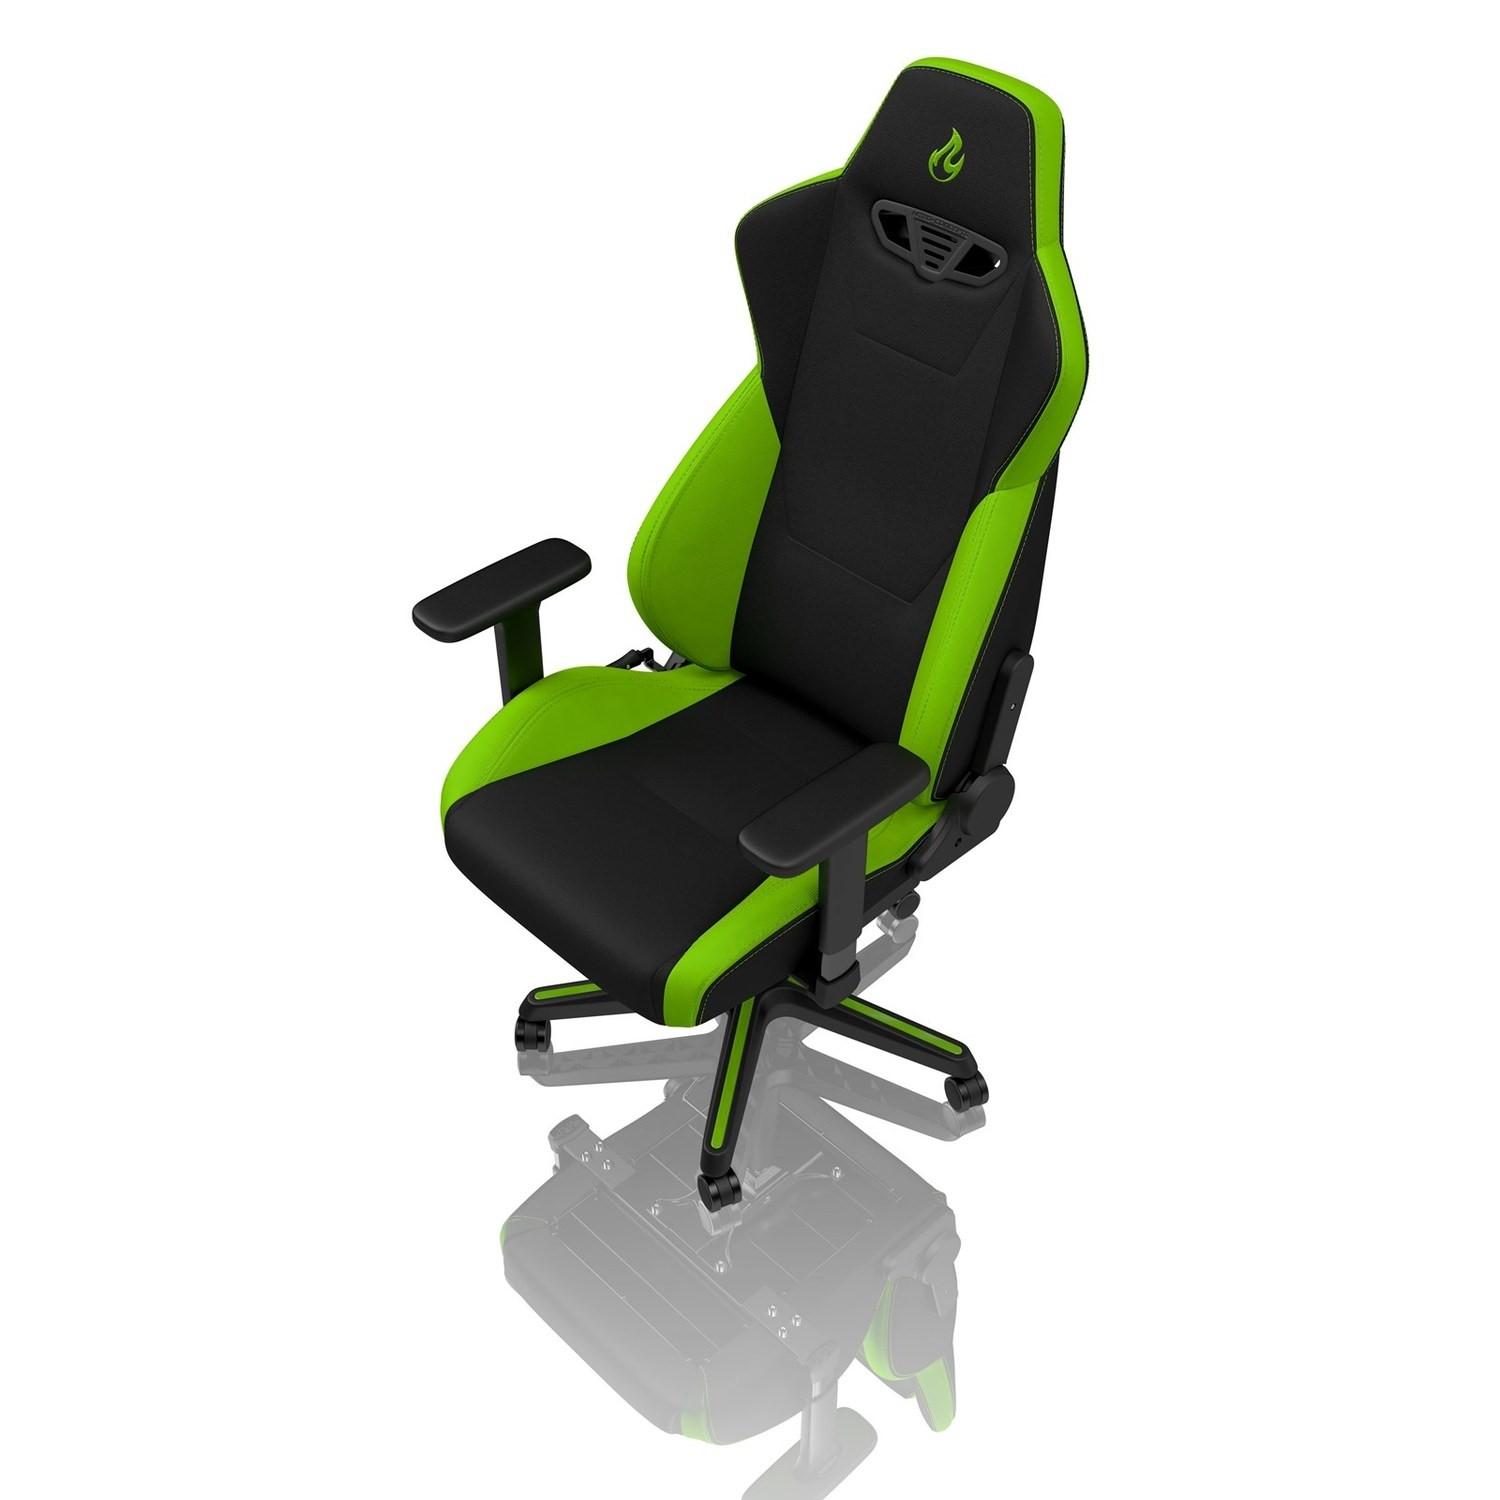 Awesome Nitro Concepts S300 Fabric Gaming Chair In Atomic Green Ibusinesslaw Wood Chair Design Ideas Ibusinesslaworg